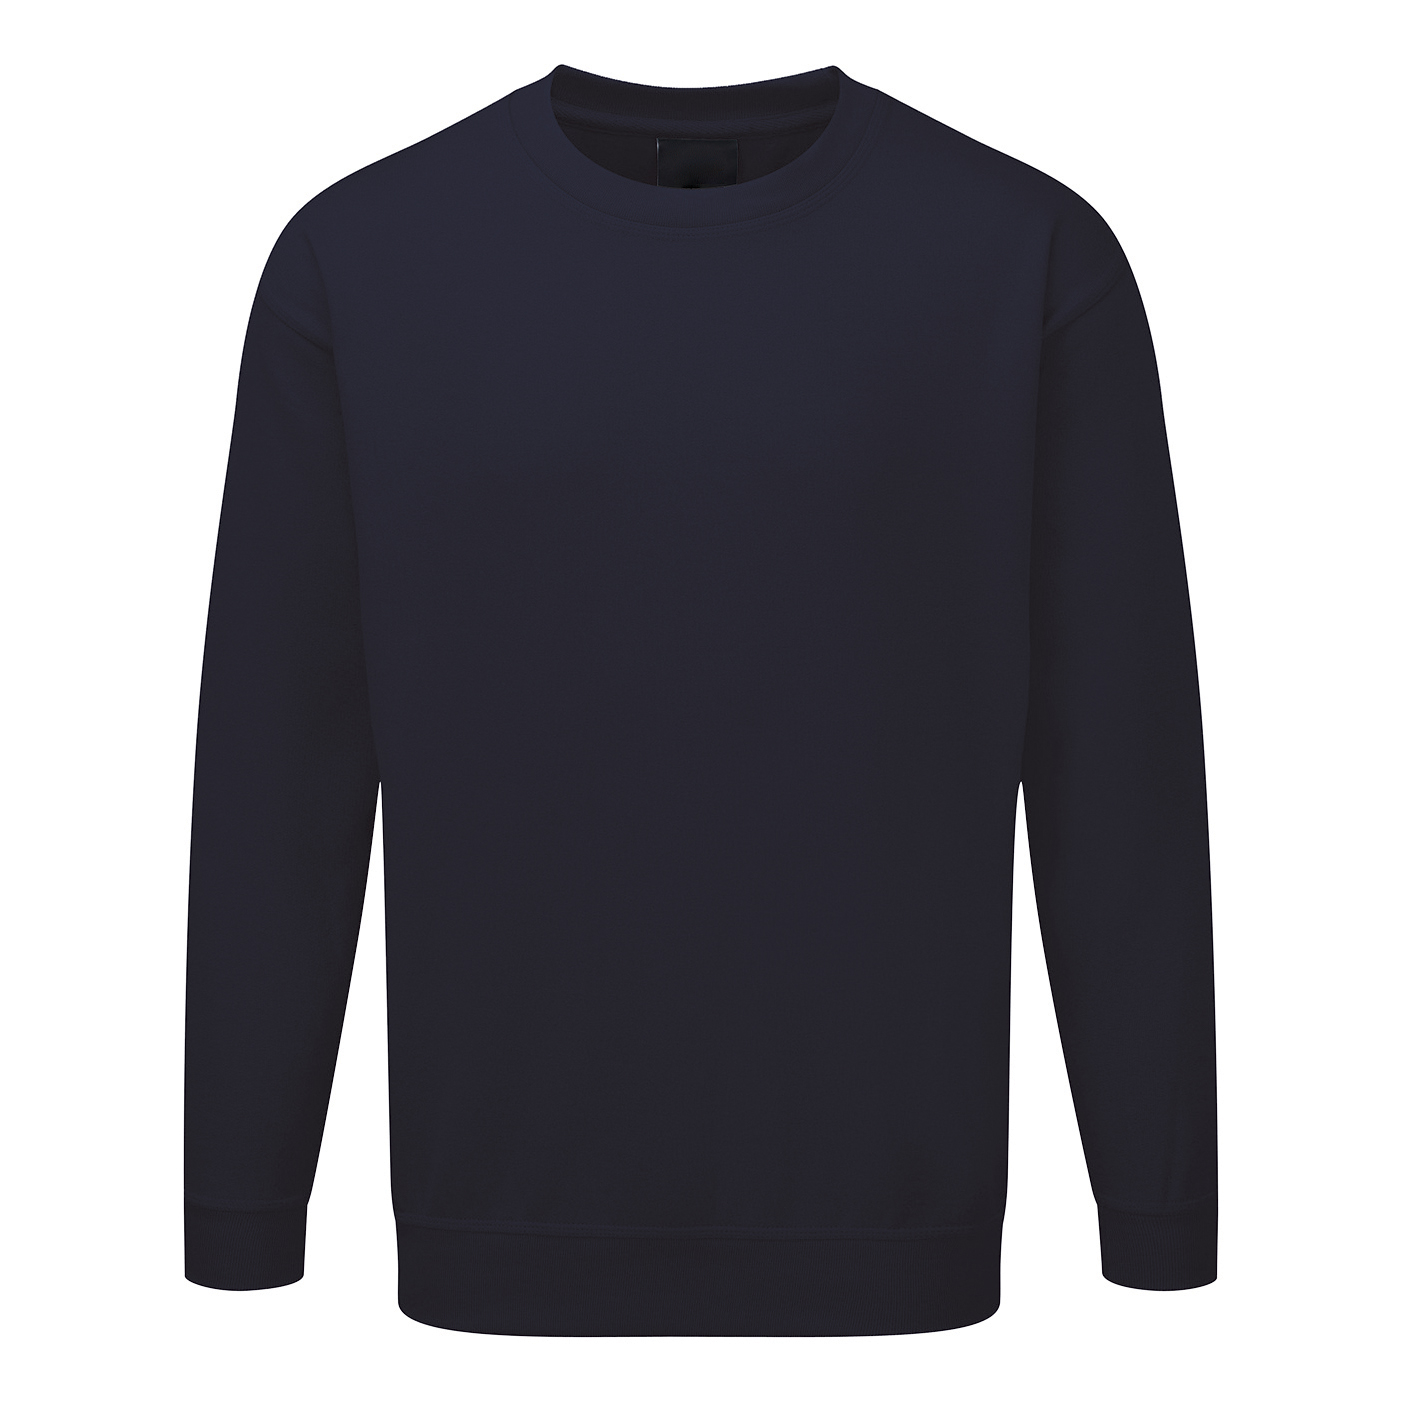 Click Workwear Sweatshirt Polycotton 300gsm 4XL Navy Blue Ref CLPCSN4XL 1-3 Days Lead Time